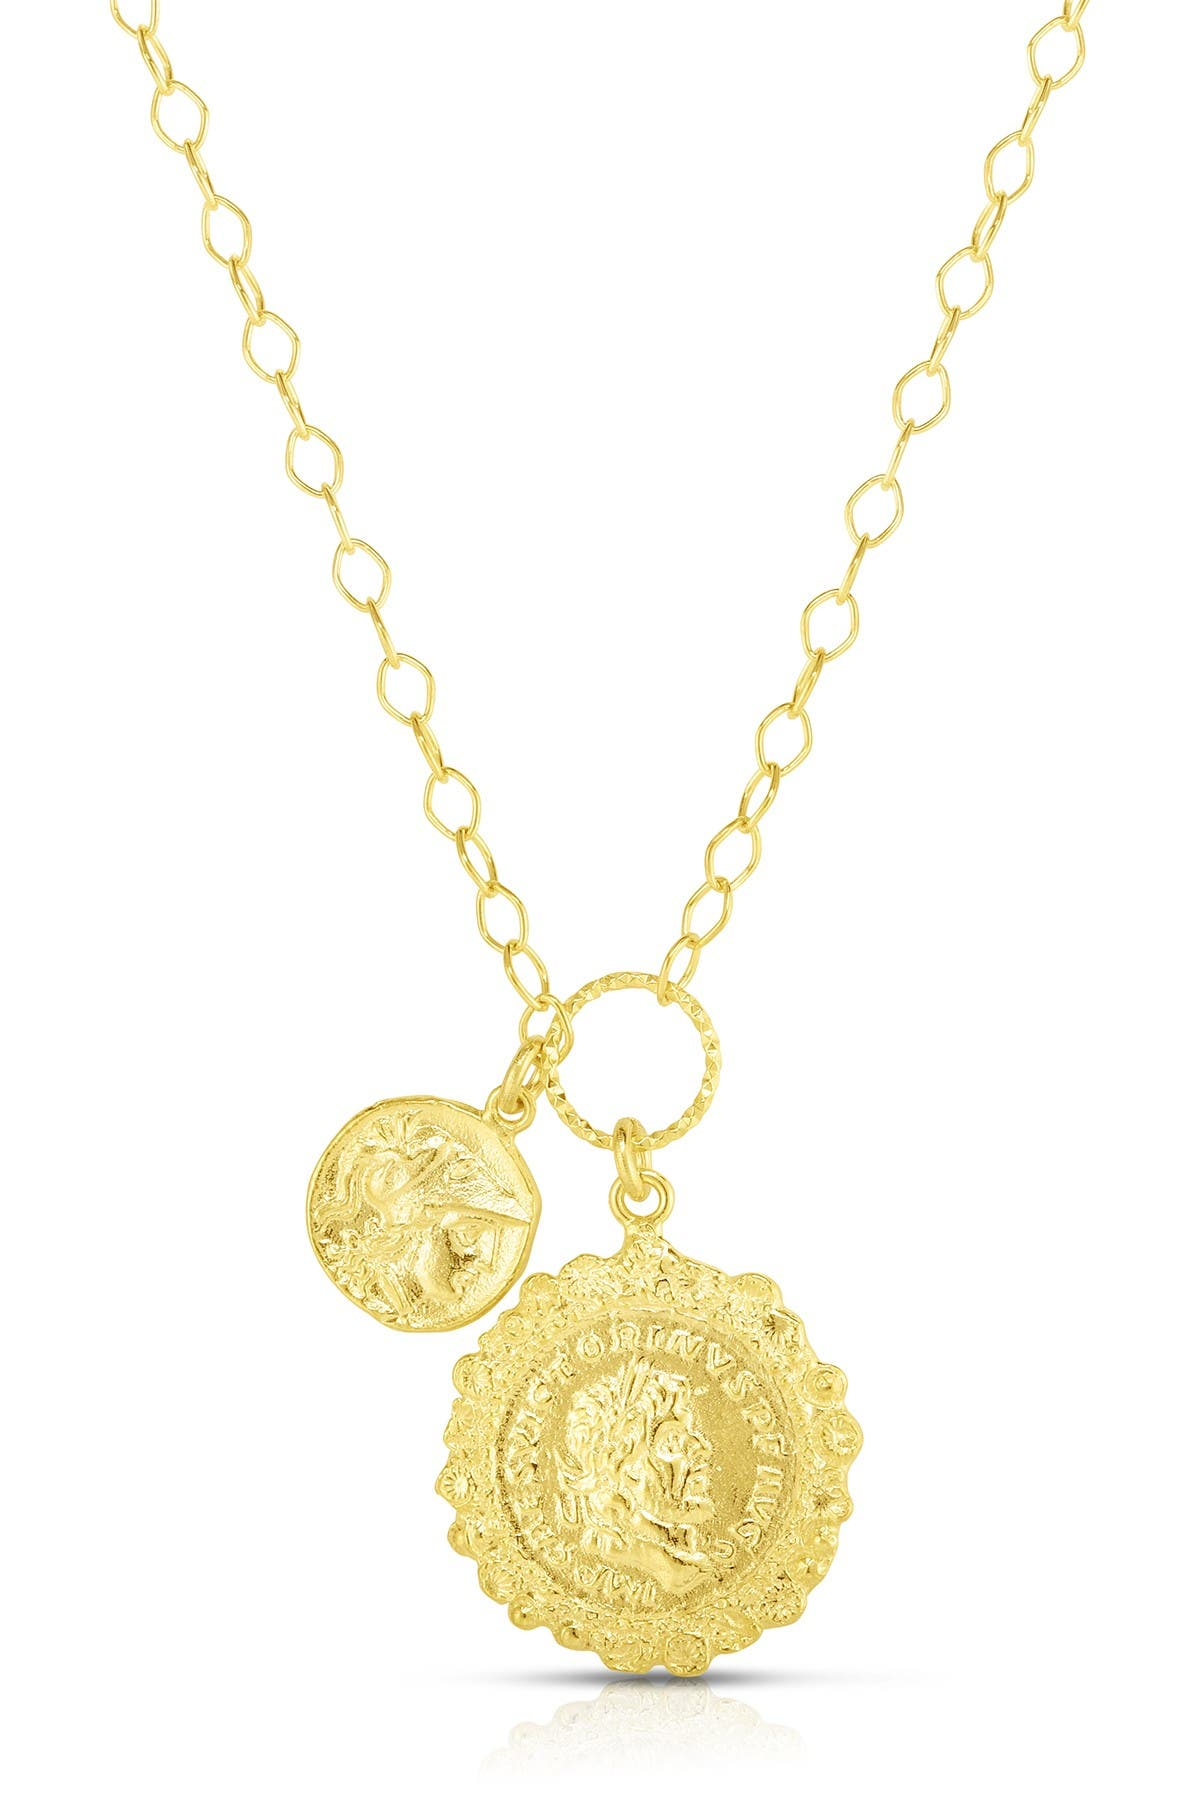 Image of Sphera Milano 14K Yellow Gold Plated Sterling Silver Double Coin Charm Necklace